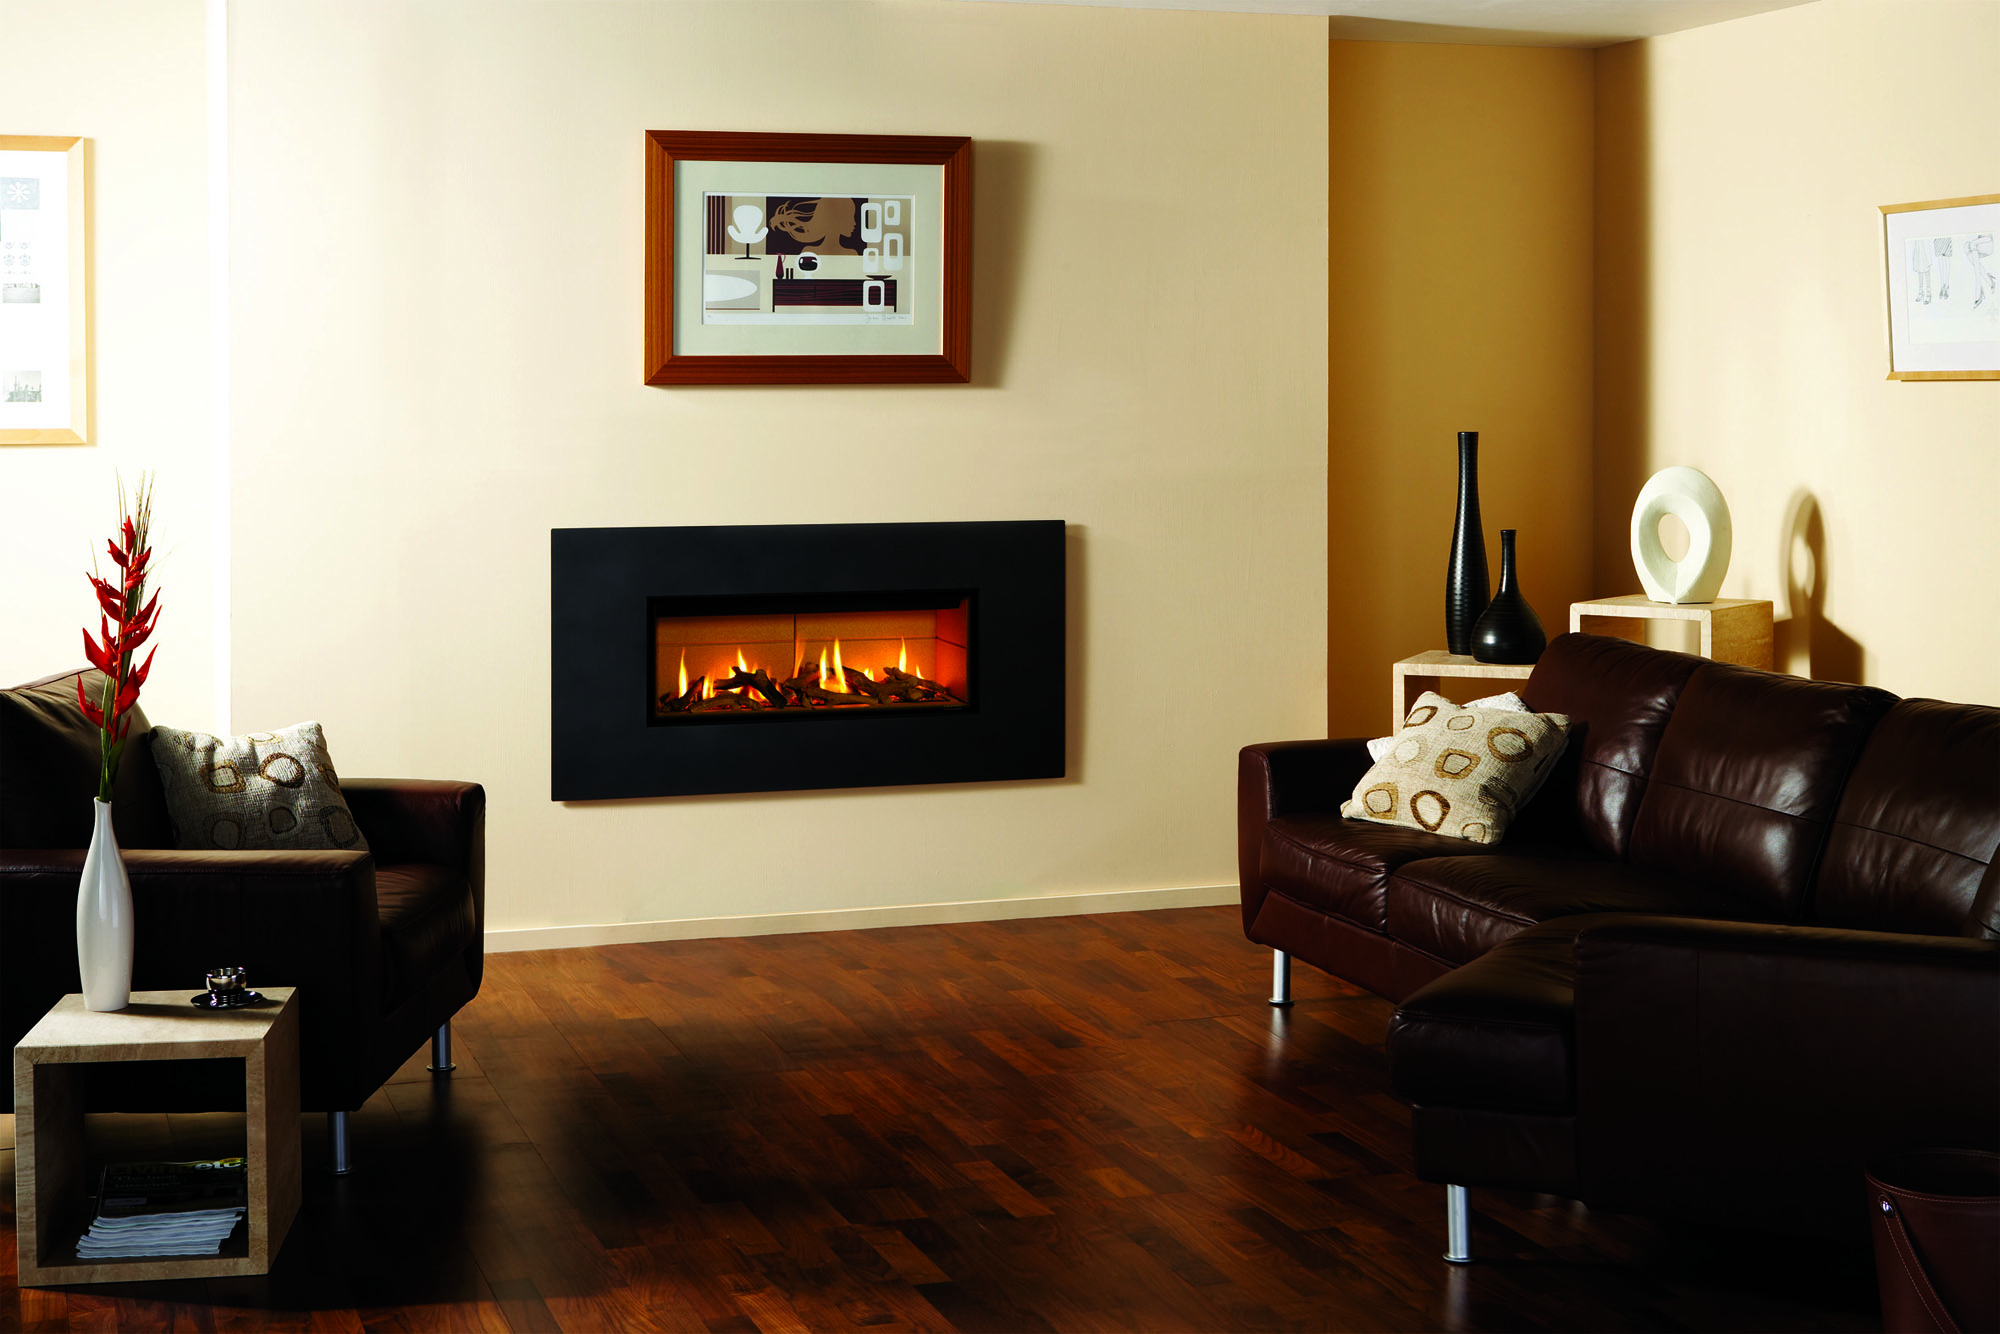 Living Room With A Fireplace Fireplaces In Wakefield Fires Stoves The Living Room